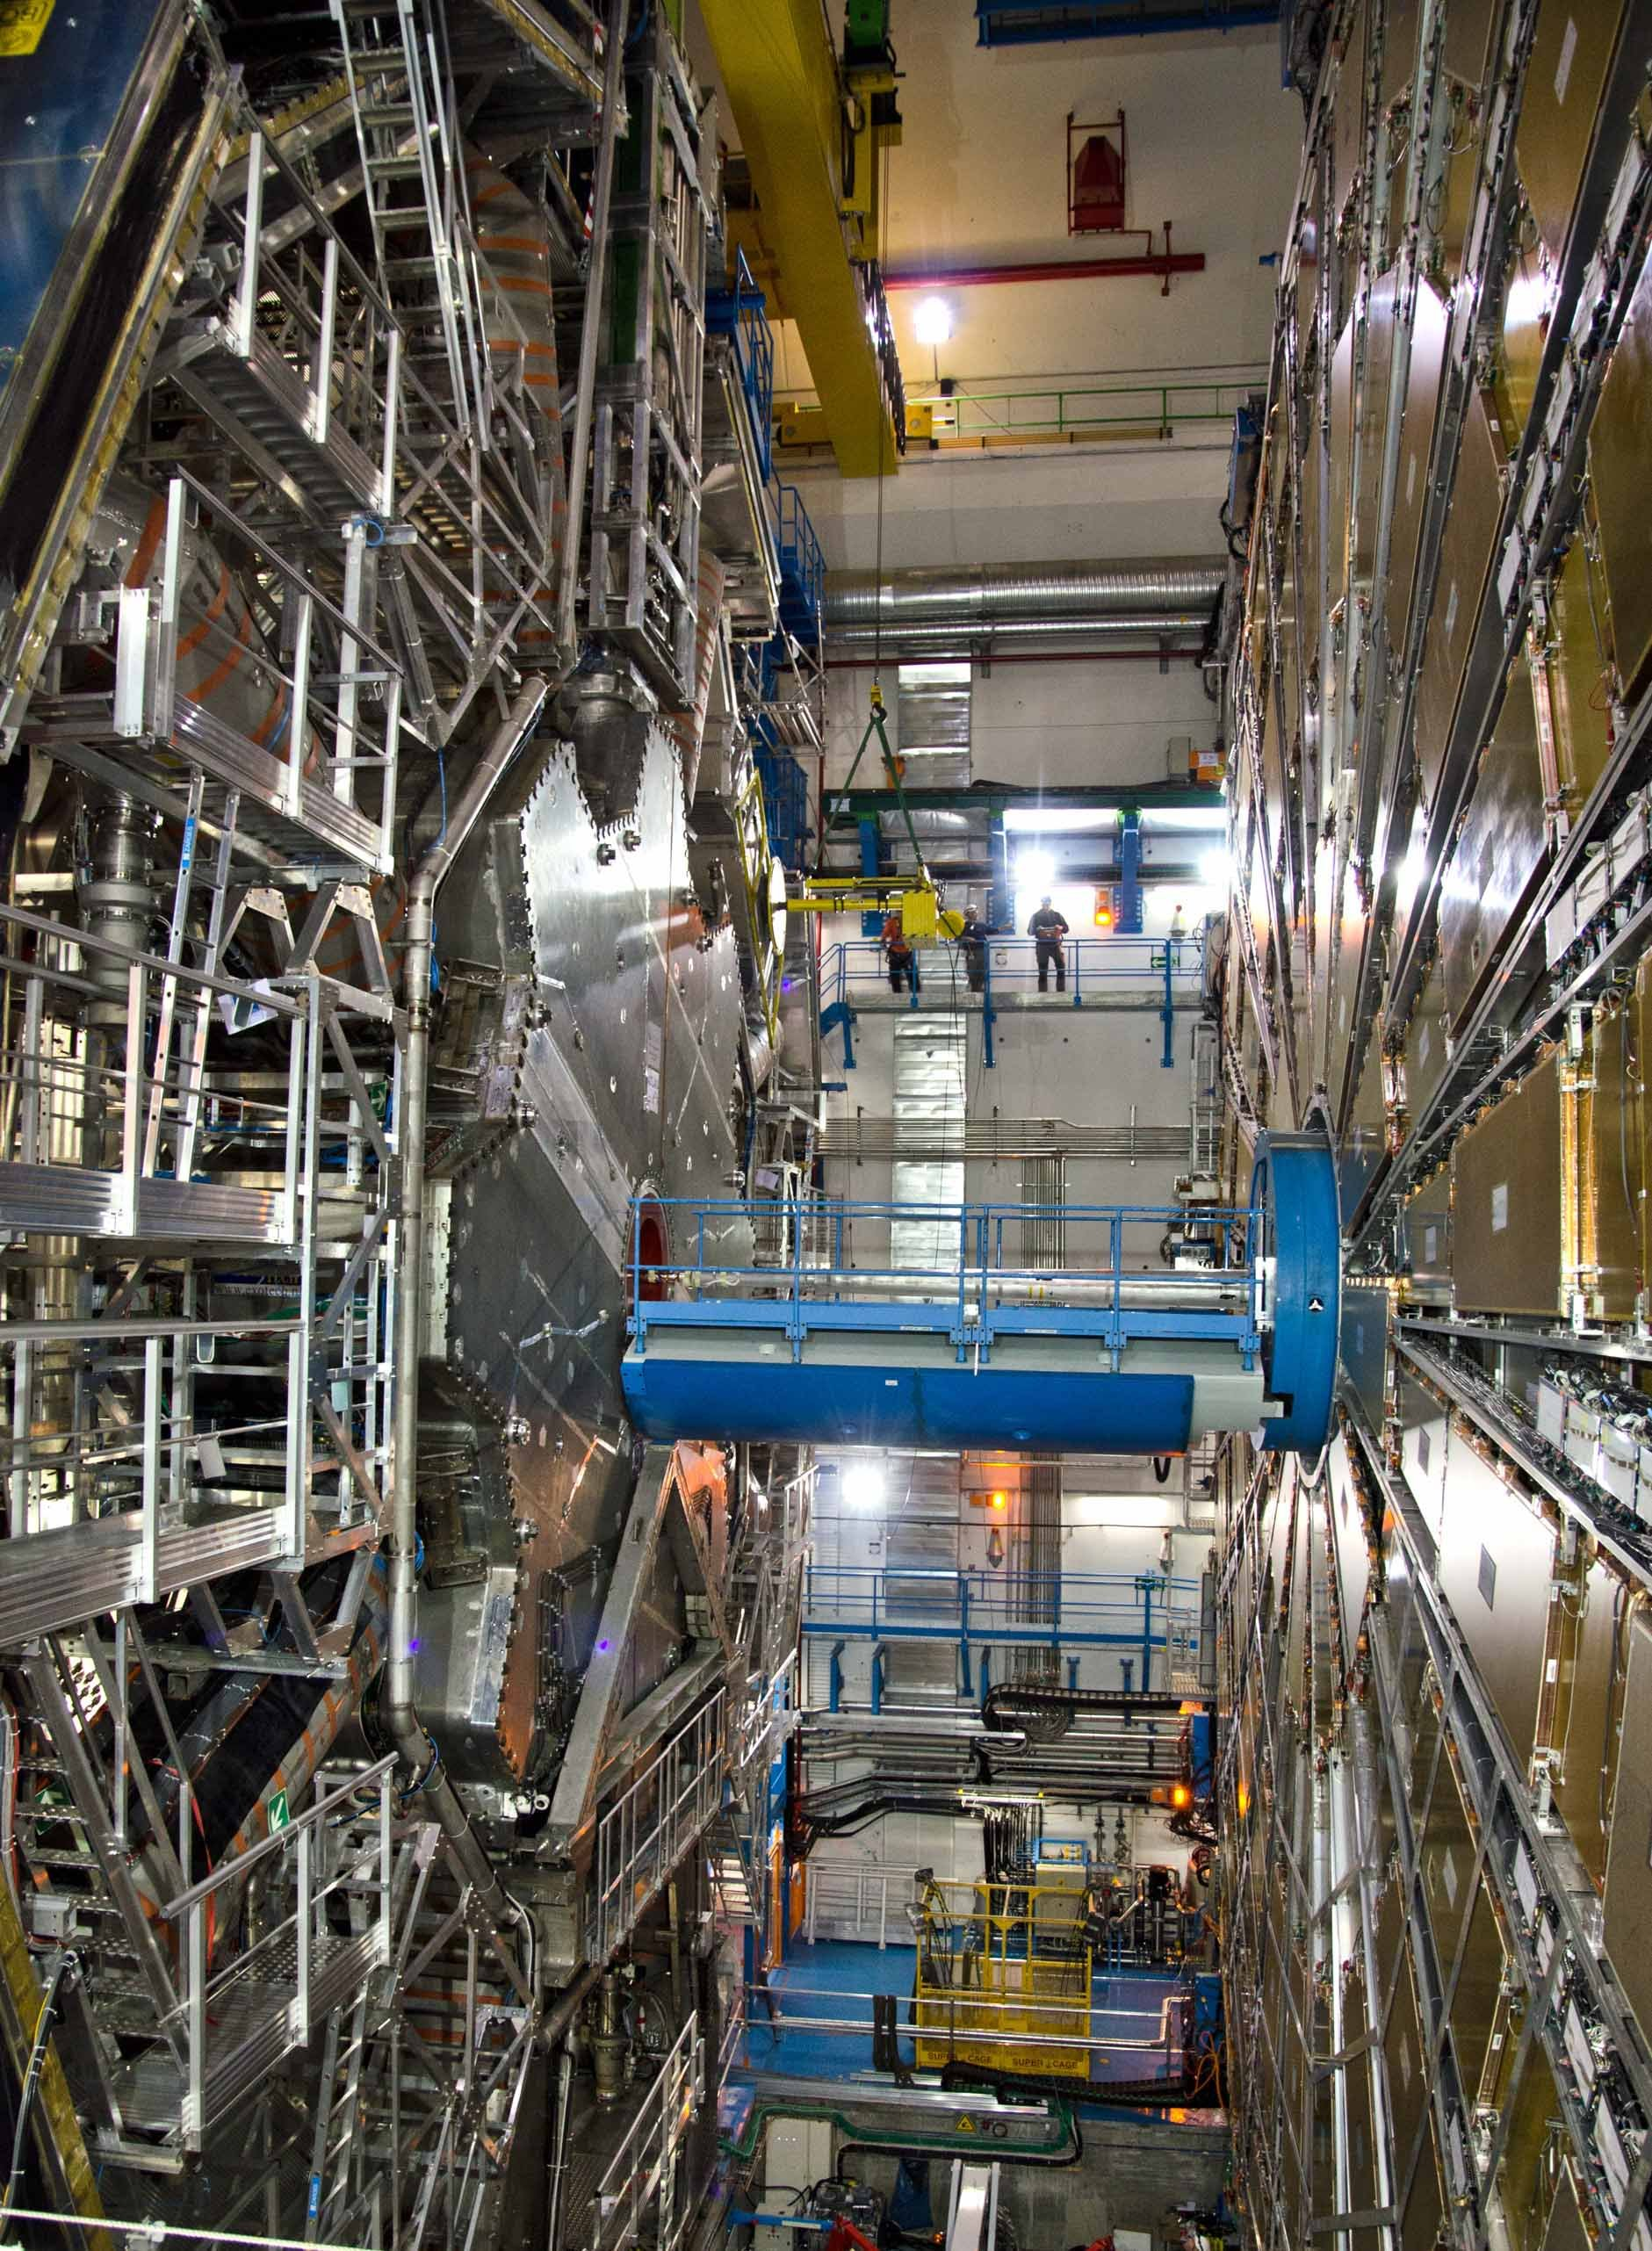 The ALICE experiment at CERN's Large Hadron Collider